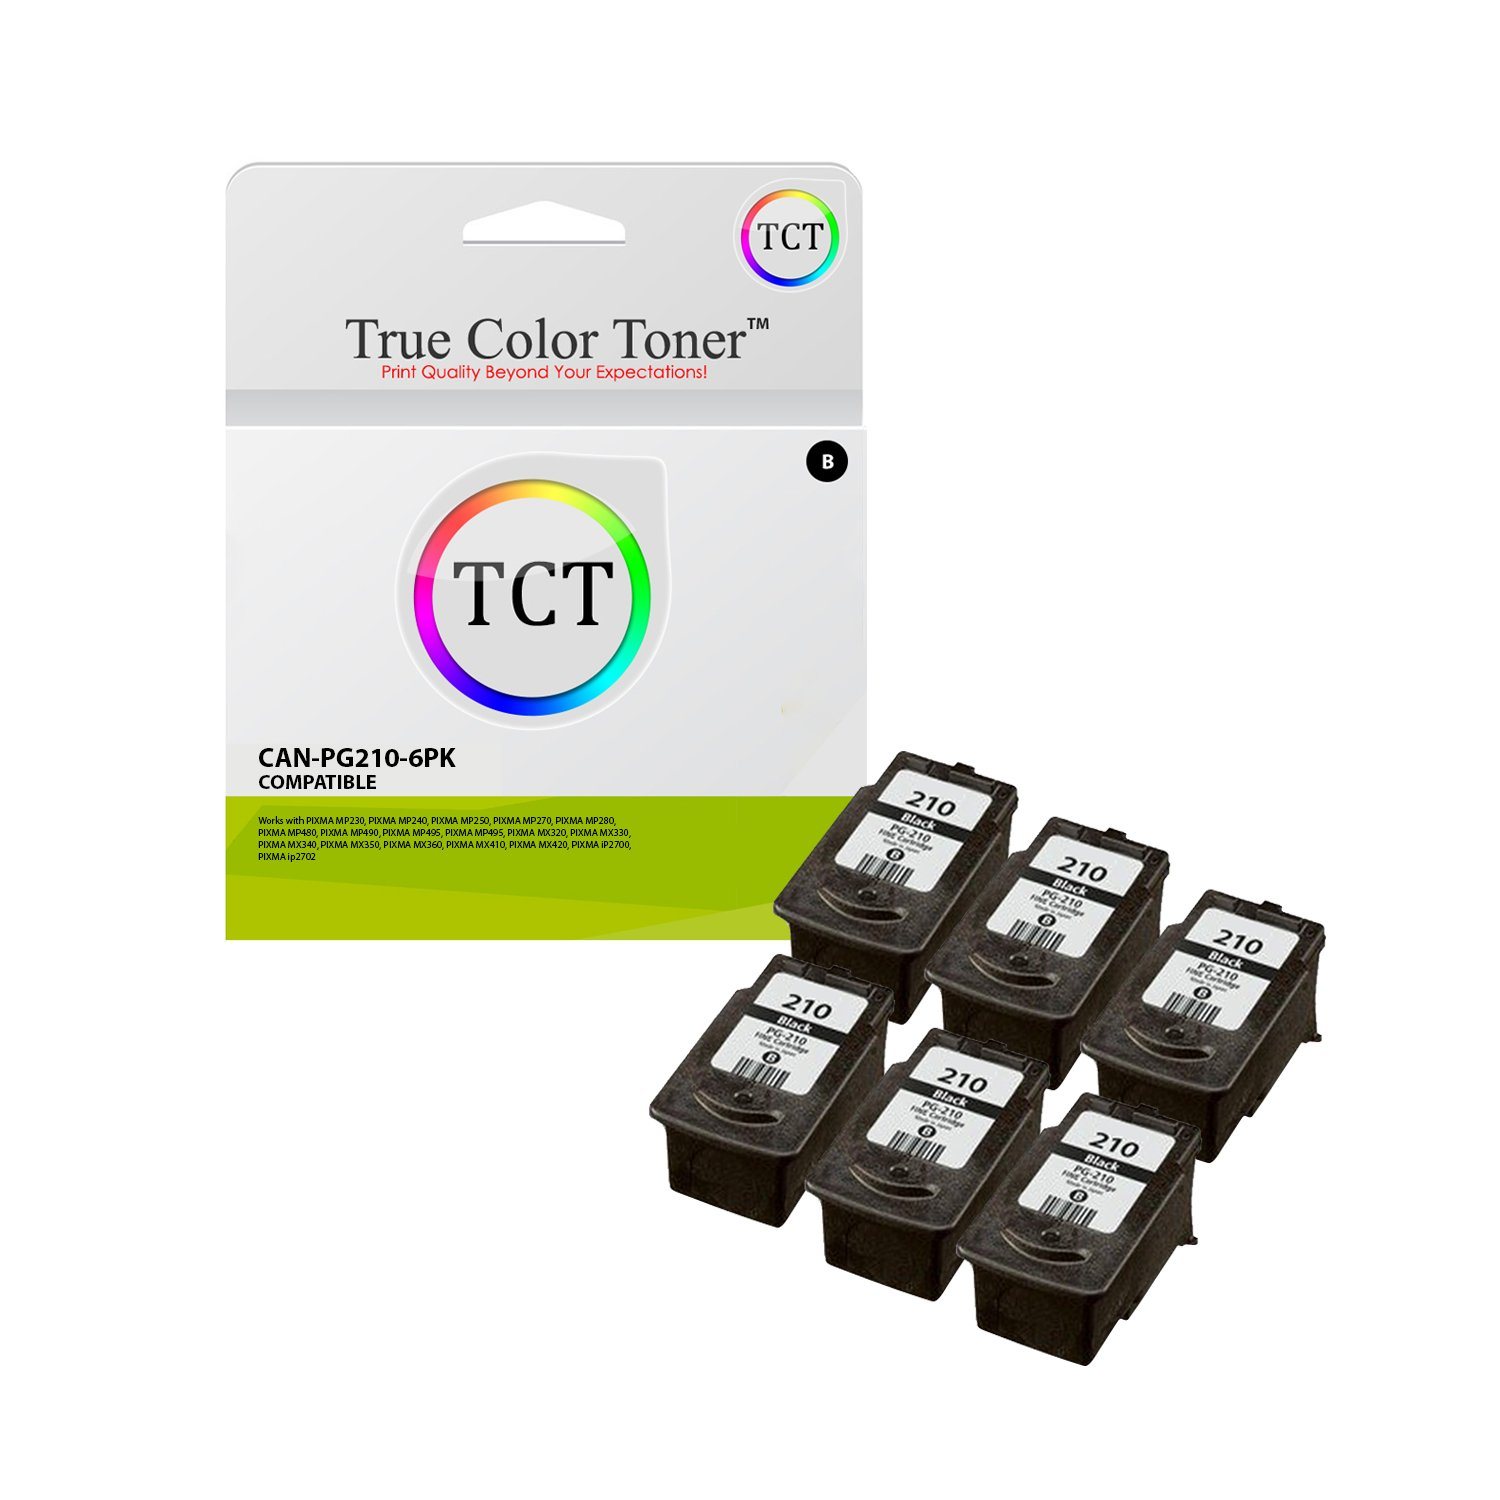 True Color Toner PG-210 6 Pack PG210 Black High Yield Compatible Ink Replacement for Canon Pixma MP240 MP250 MP270 MP280 MP495 MX320 MX330 MX340 MX350 MX410 MX420 iP2700 iP2702 Printers (400 Pages)